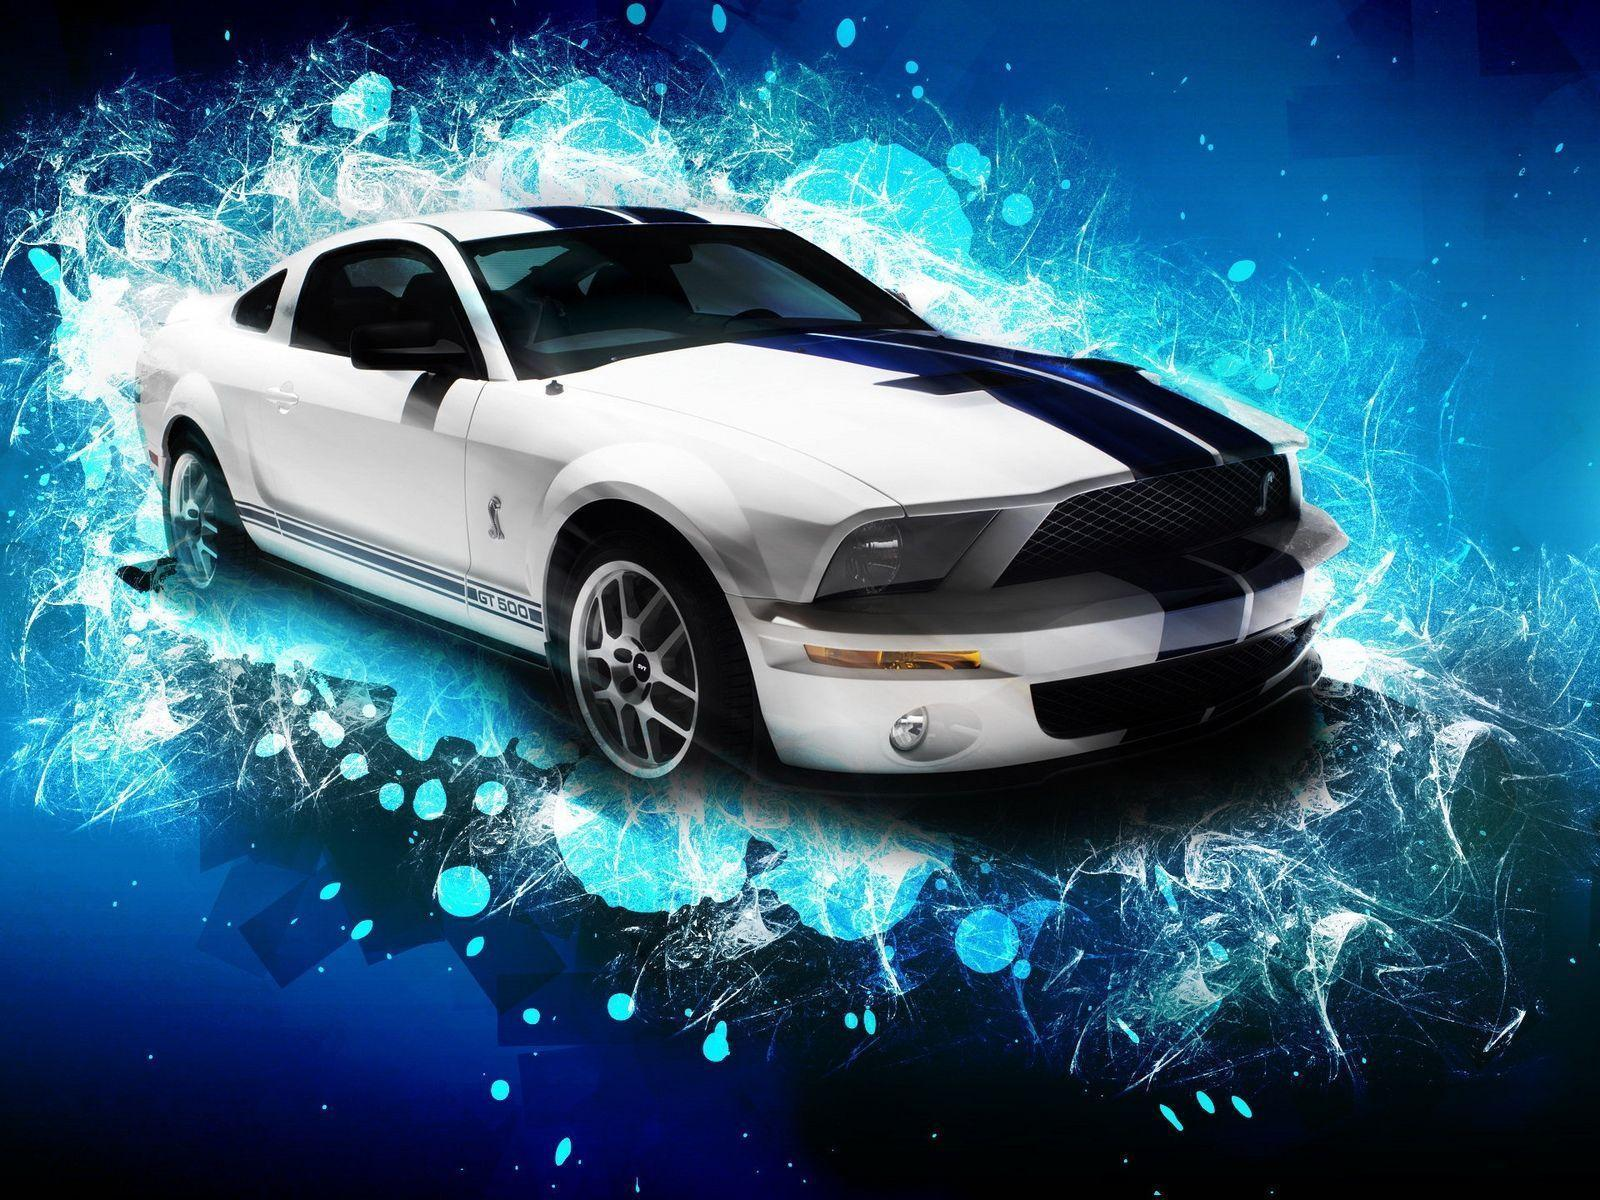 Wallpapers For > Cool 3d Wallpapers Cars